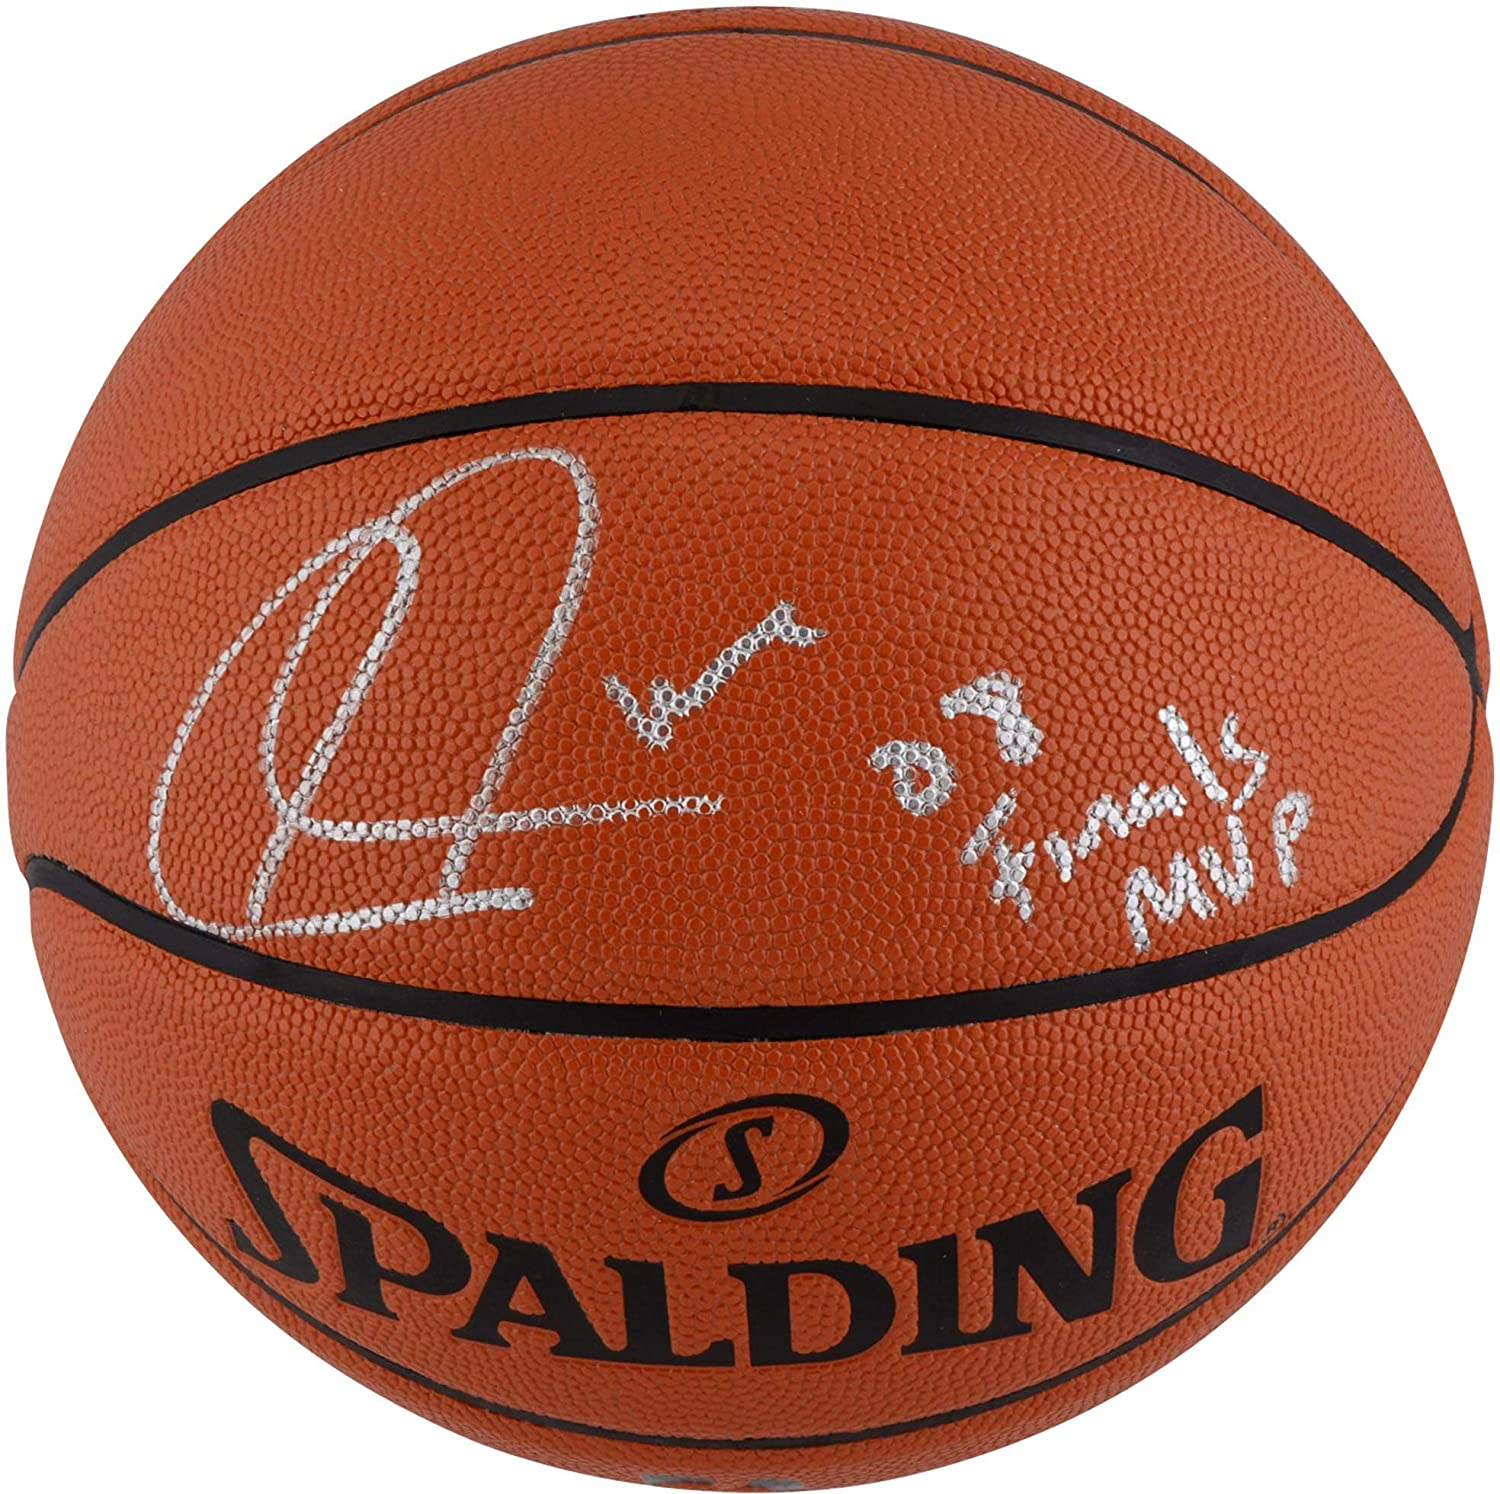 Paul Pierce Boston Celtics Autographed Indoor/Outdoor Basketball with\'08 Finals MVP\' Inscription - Fanatics Authentic Certified